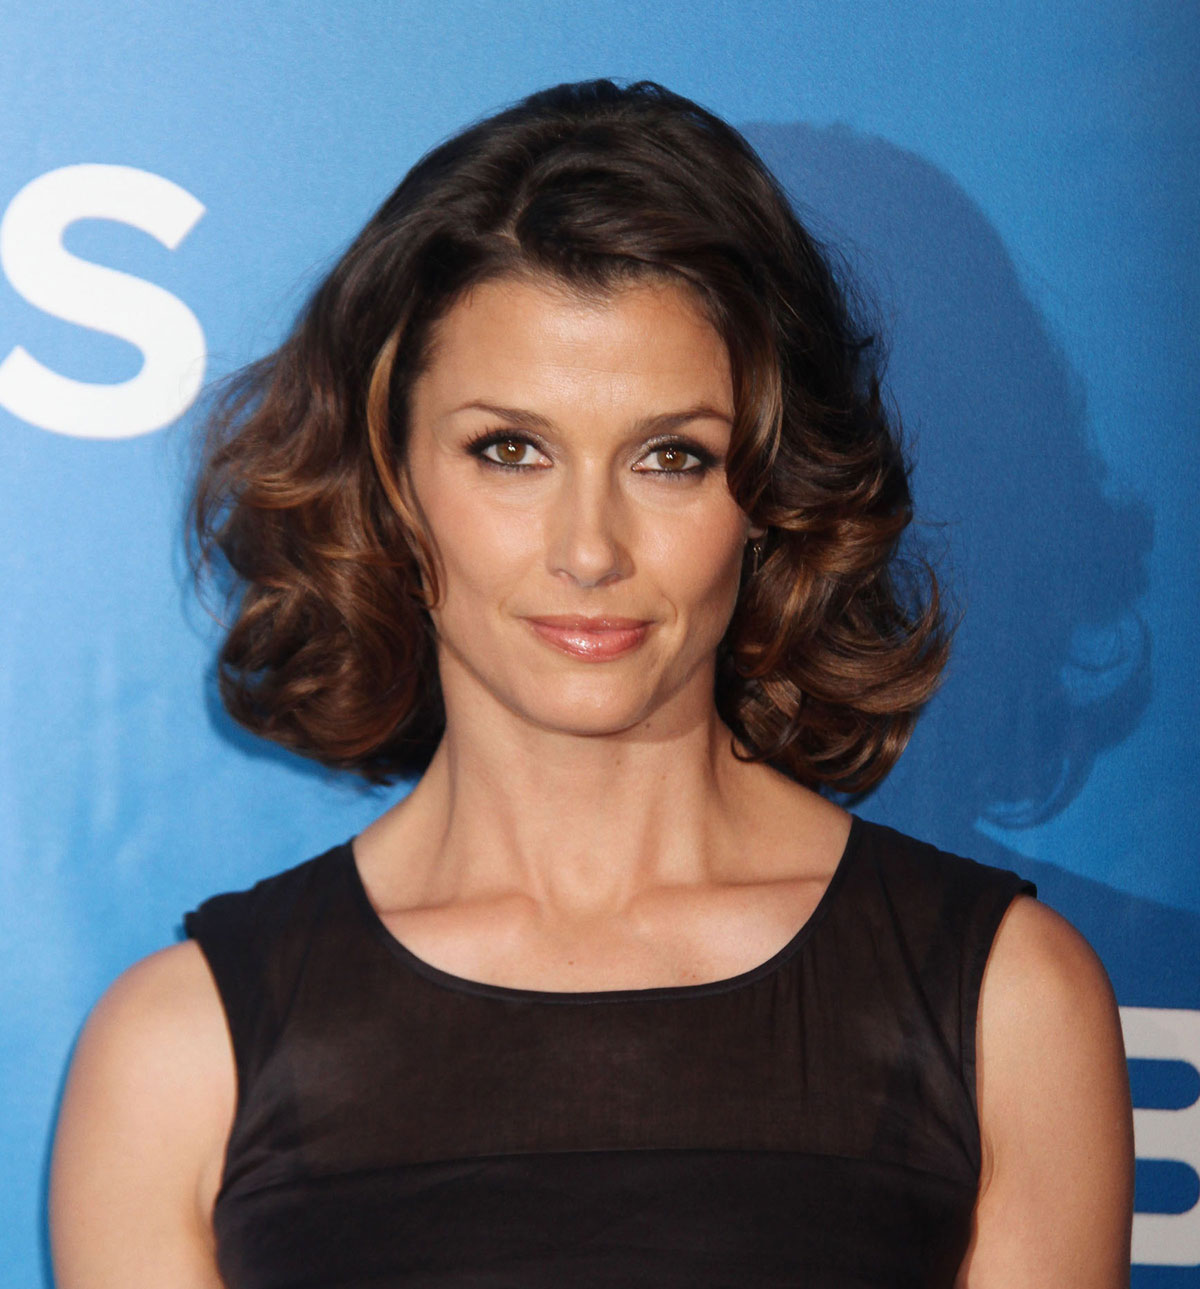 The 47-year old daughter of father Edward Bradley Moynahan and mother Mary Bridget Moynahan, 177 cm tall Bridget Moynahan in 2018 photo